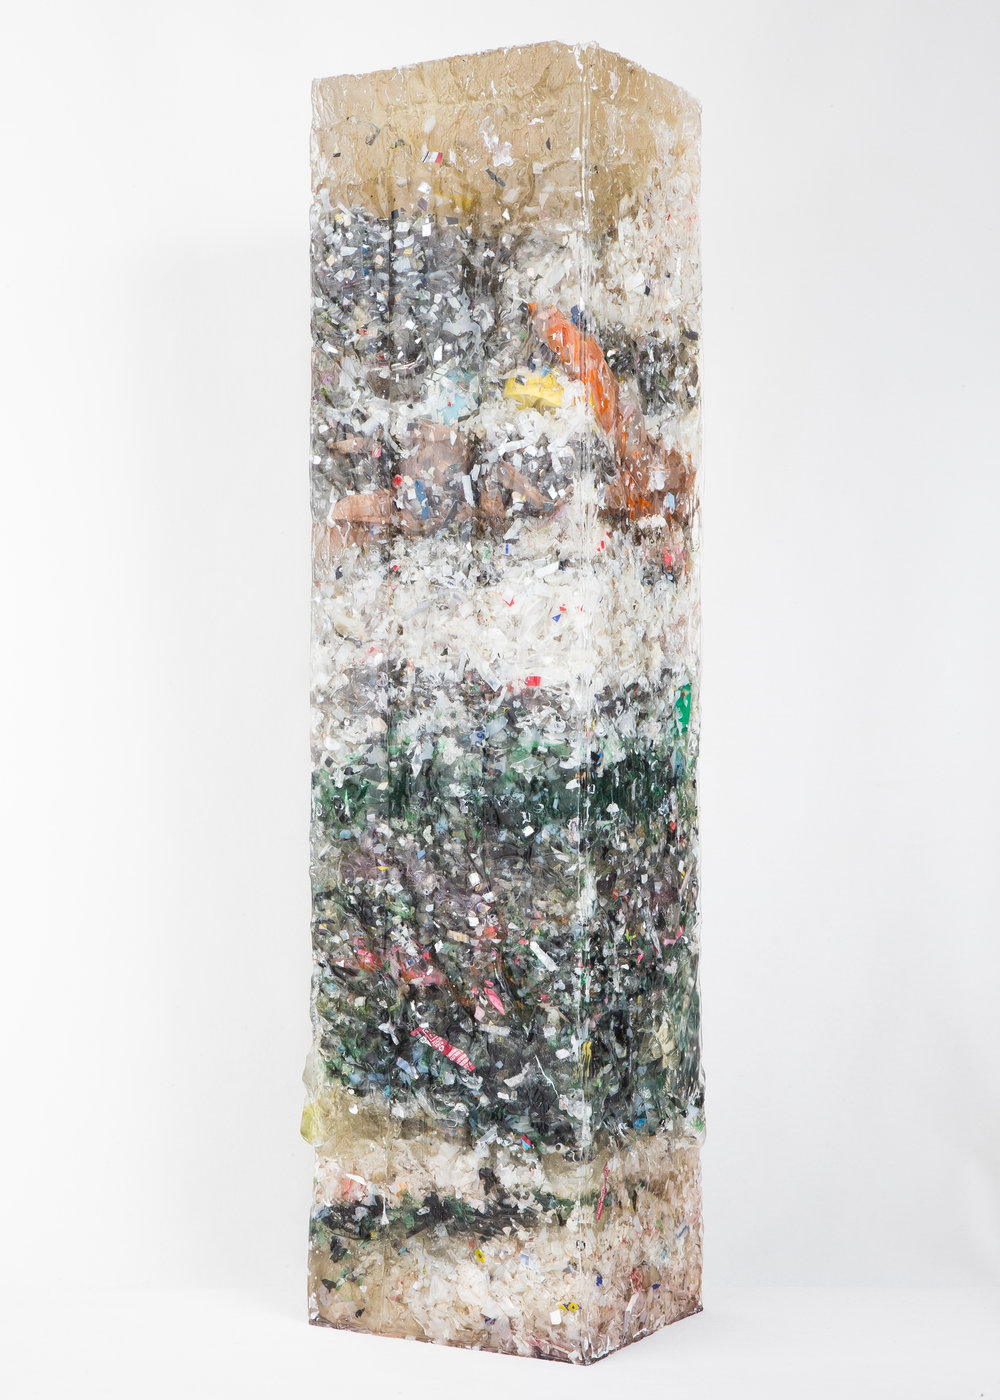 """THRASHER"" - H23.5""xD6""xW4.5"" // Epoxy resin, Trash (plastic bottles, food wrappers, containers, plastic bags, CDs, paint materials, production waste* **)  *(waste created during Charles Osawa's production)  **(Production waste contains broken silicon molds and resin wastes)"